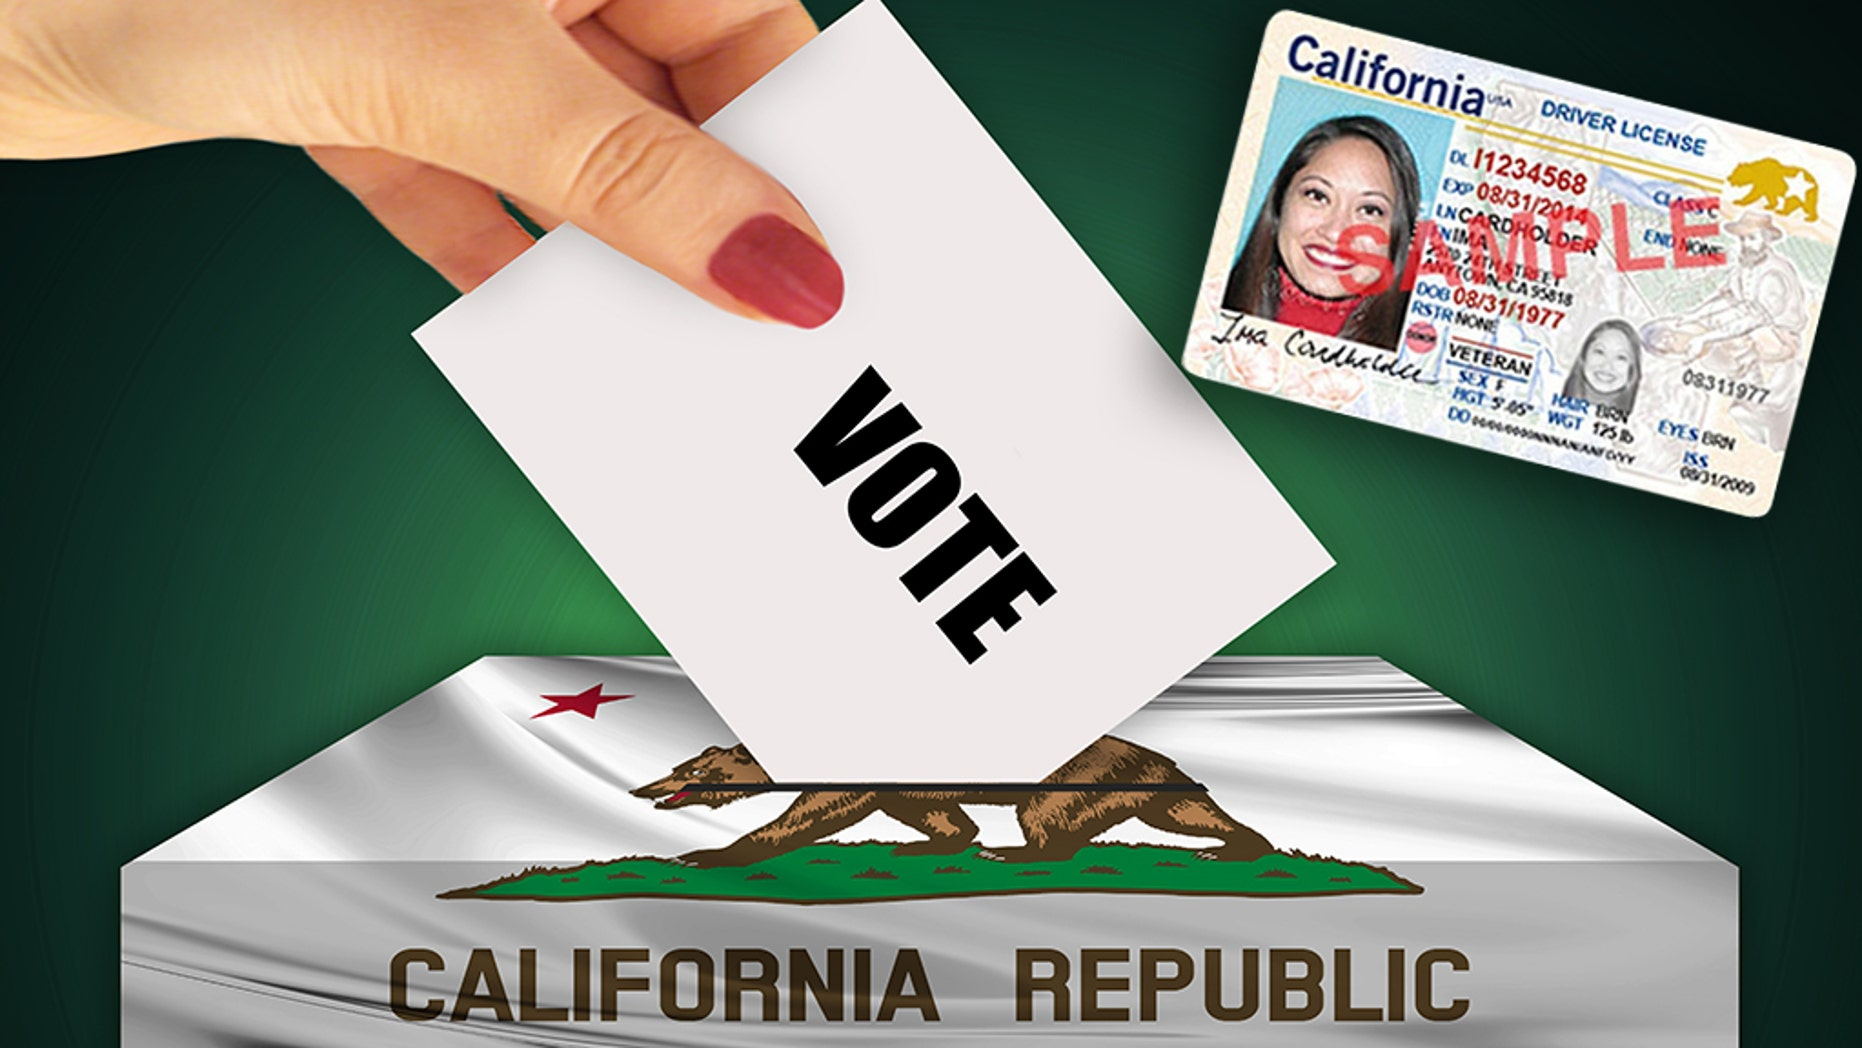 Around 1,500 people in California have been incorrectly registered to vote, according to a Monday report.